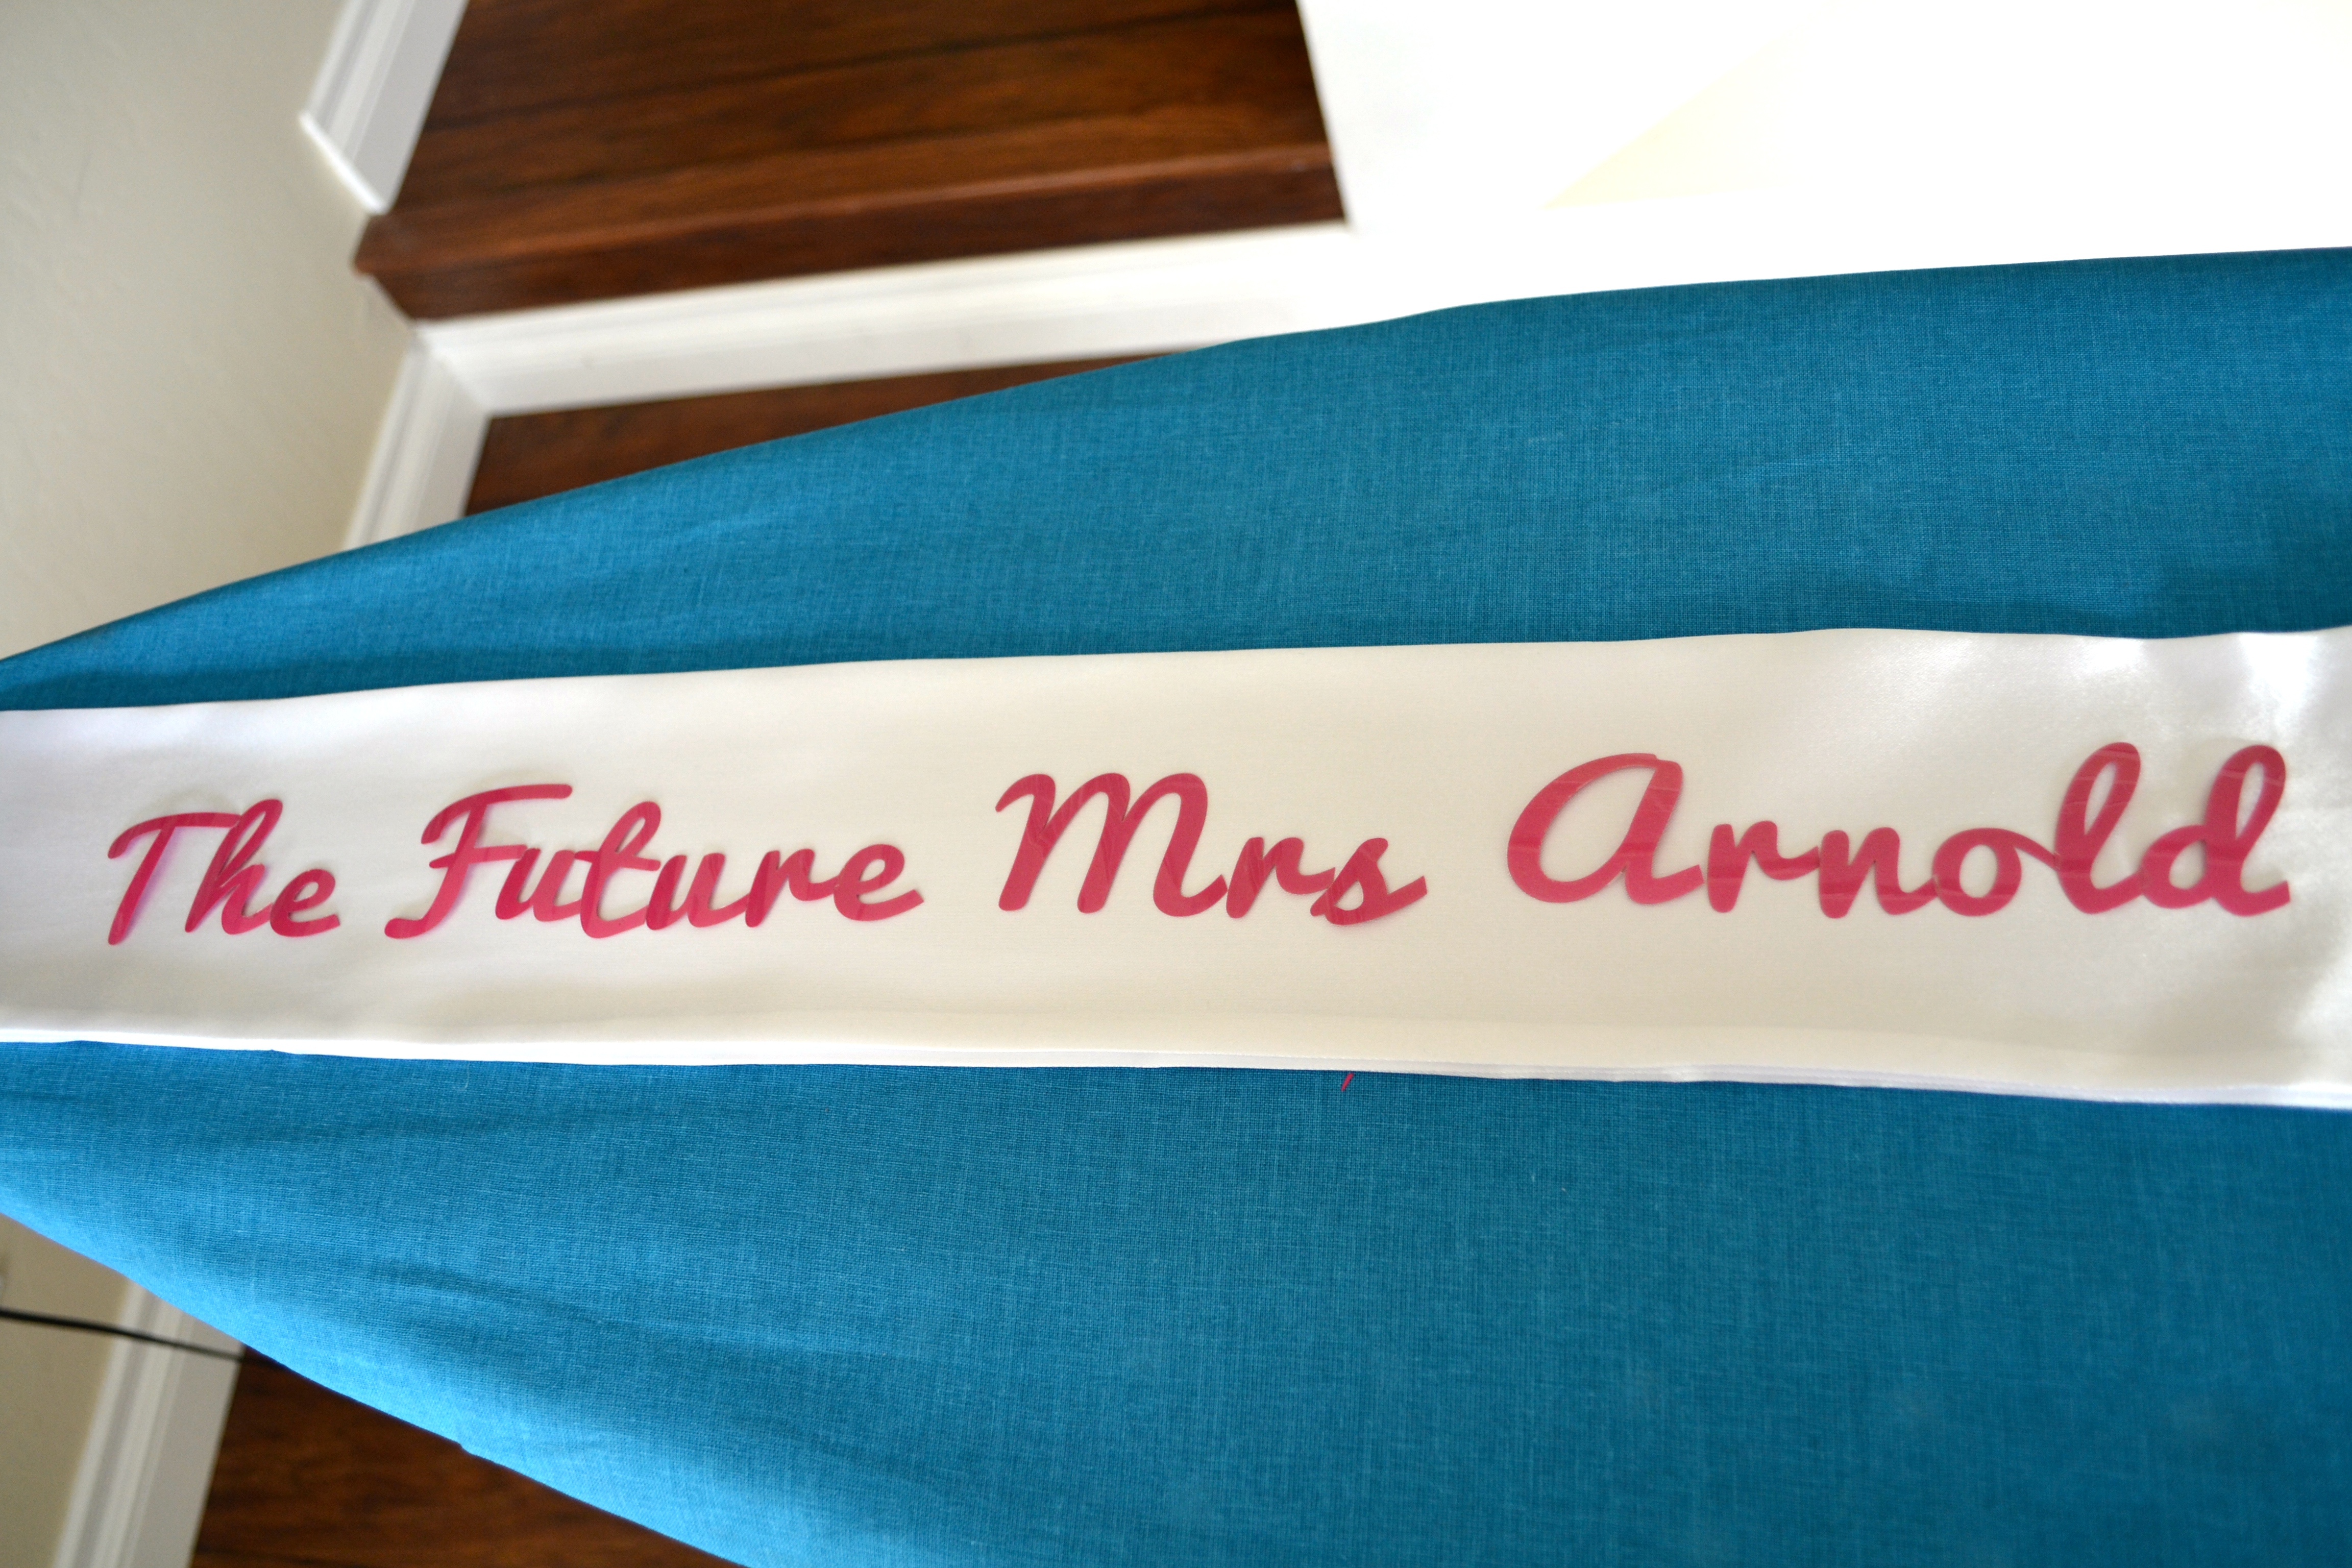 Diy decor for the bride to be a personalized bachelorette party bride to be sash solutioingenieria Choice Image